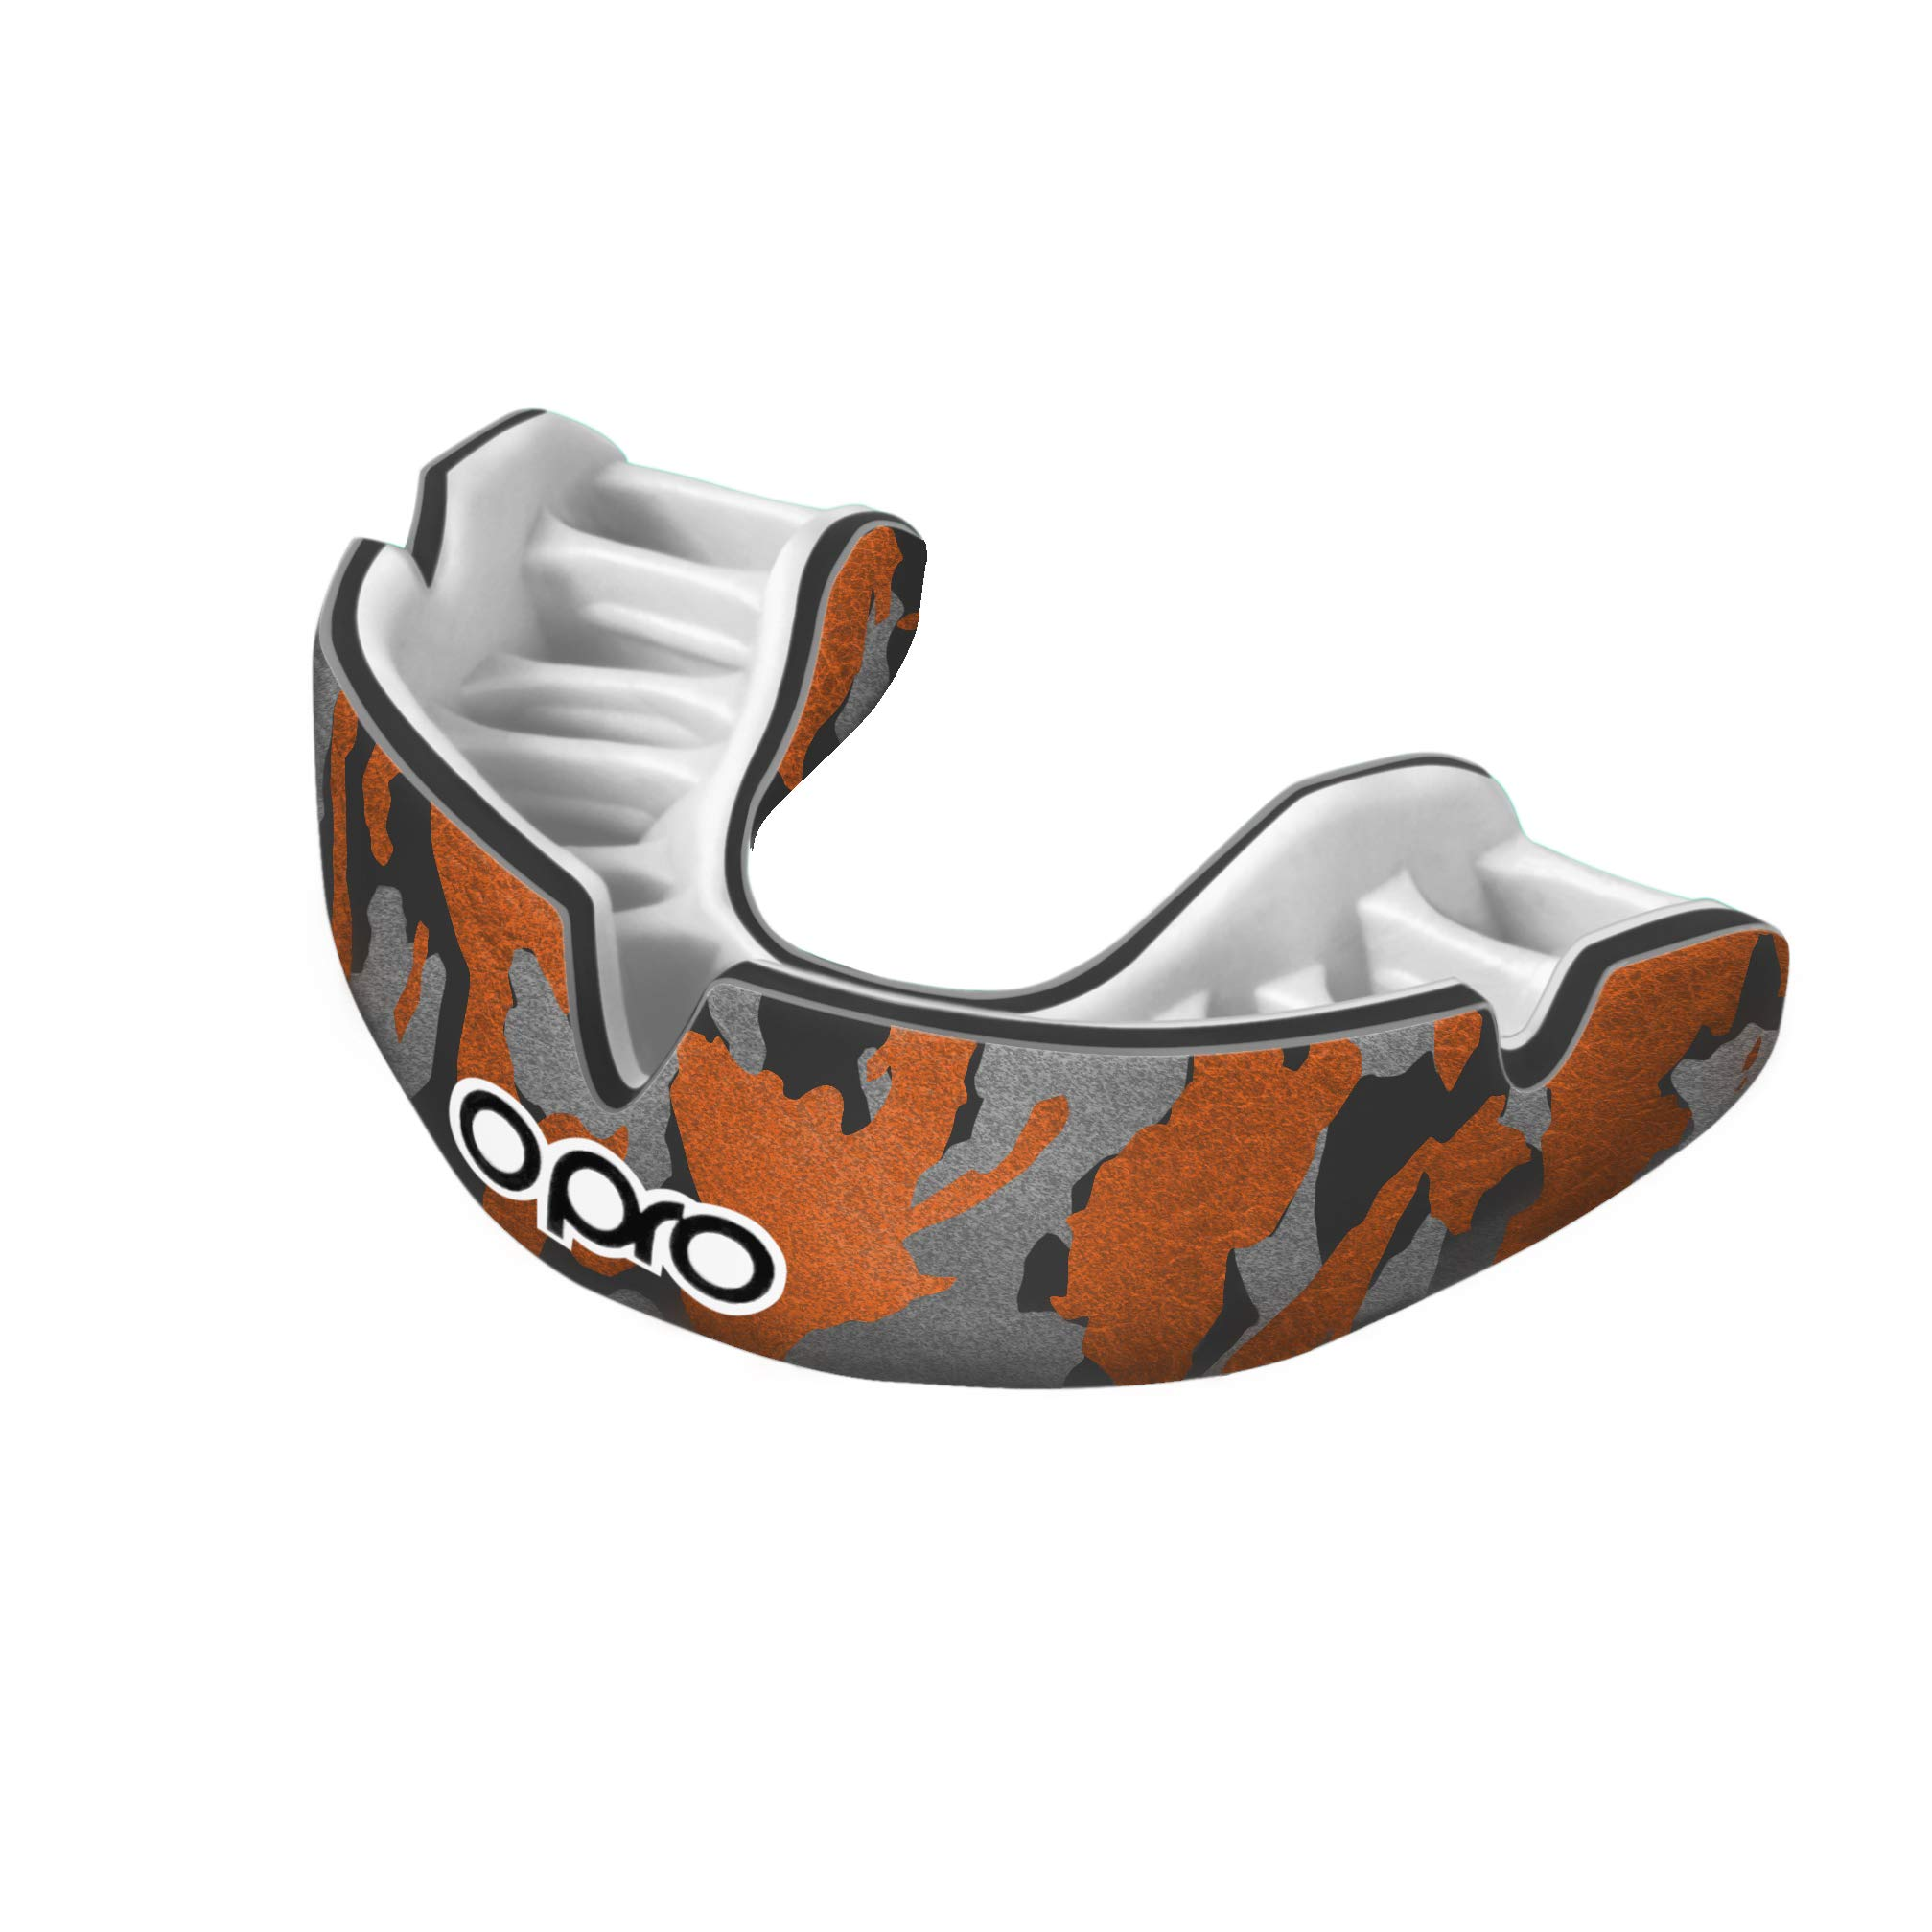 OPRO Power-Fit Mouthguard | Gum Shield for Rugby, Hockey, Wrestling, and Other Combat and Contact Sports (Adult and Junior Sizes) - 18 Month Dental Warranty (Camo - Black/Orange/Silver, Junior)